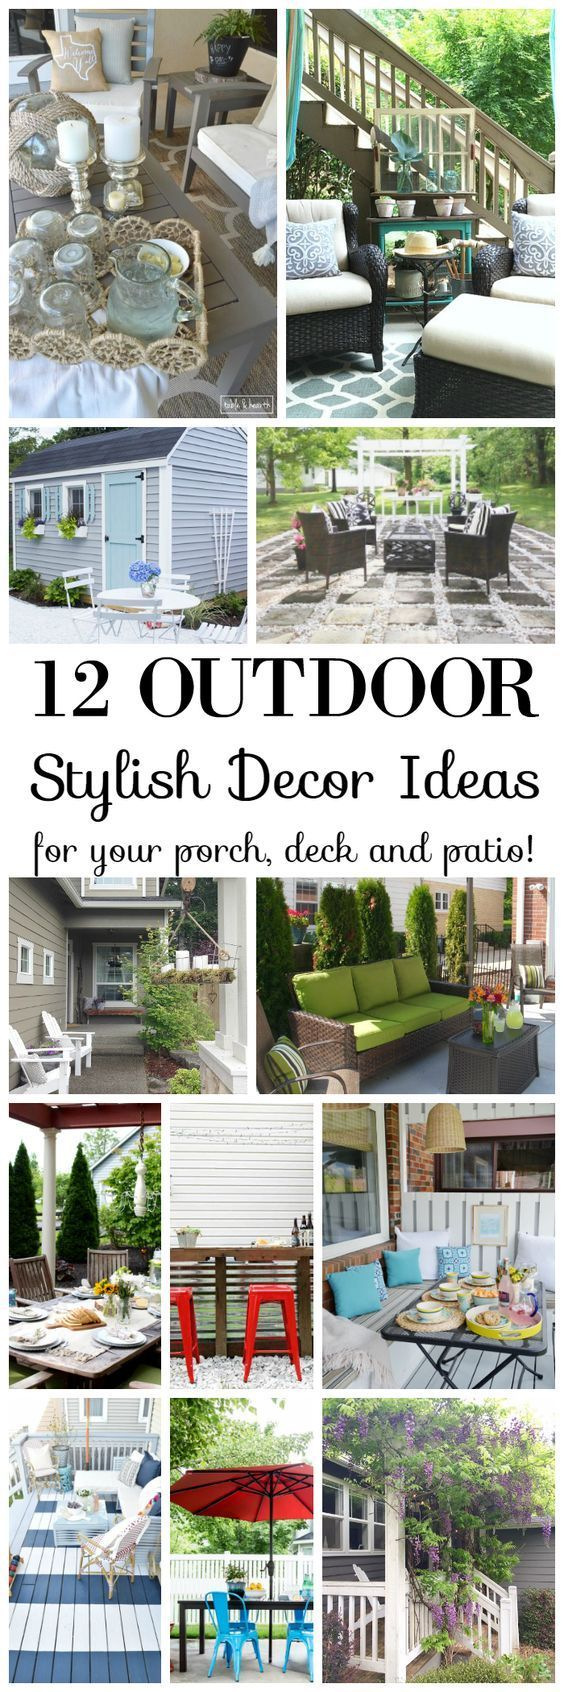 12 Stylish Porch Deck And Patio Decor Ideas Porch